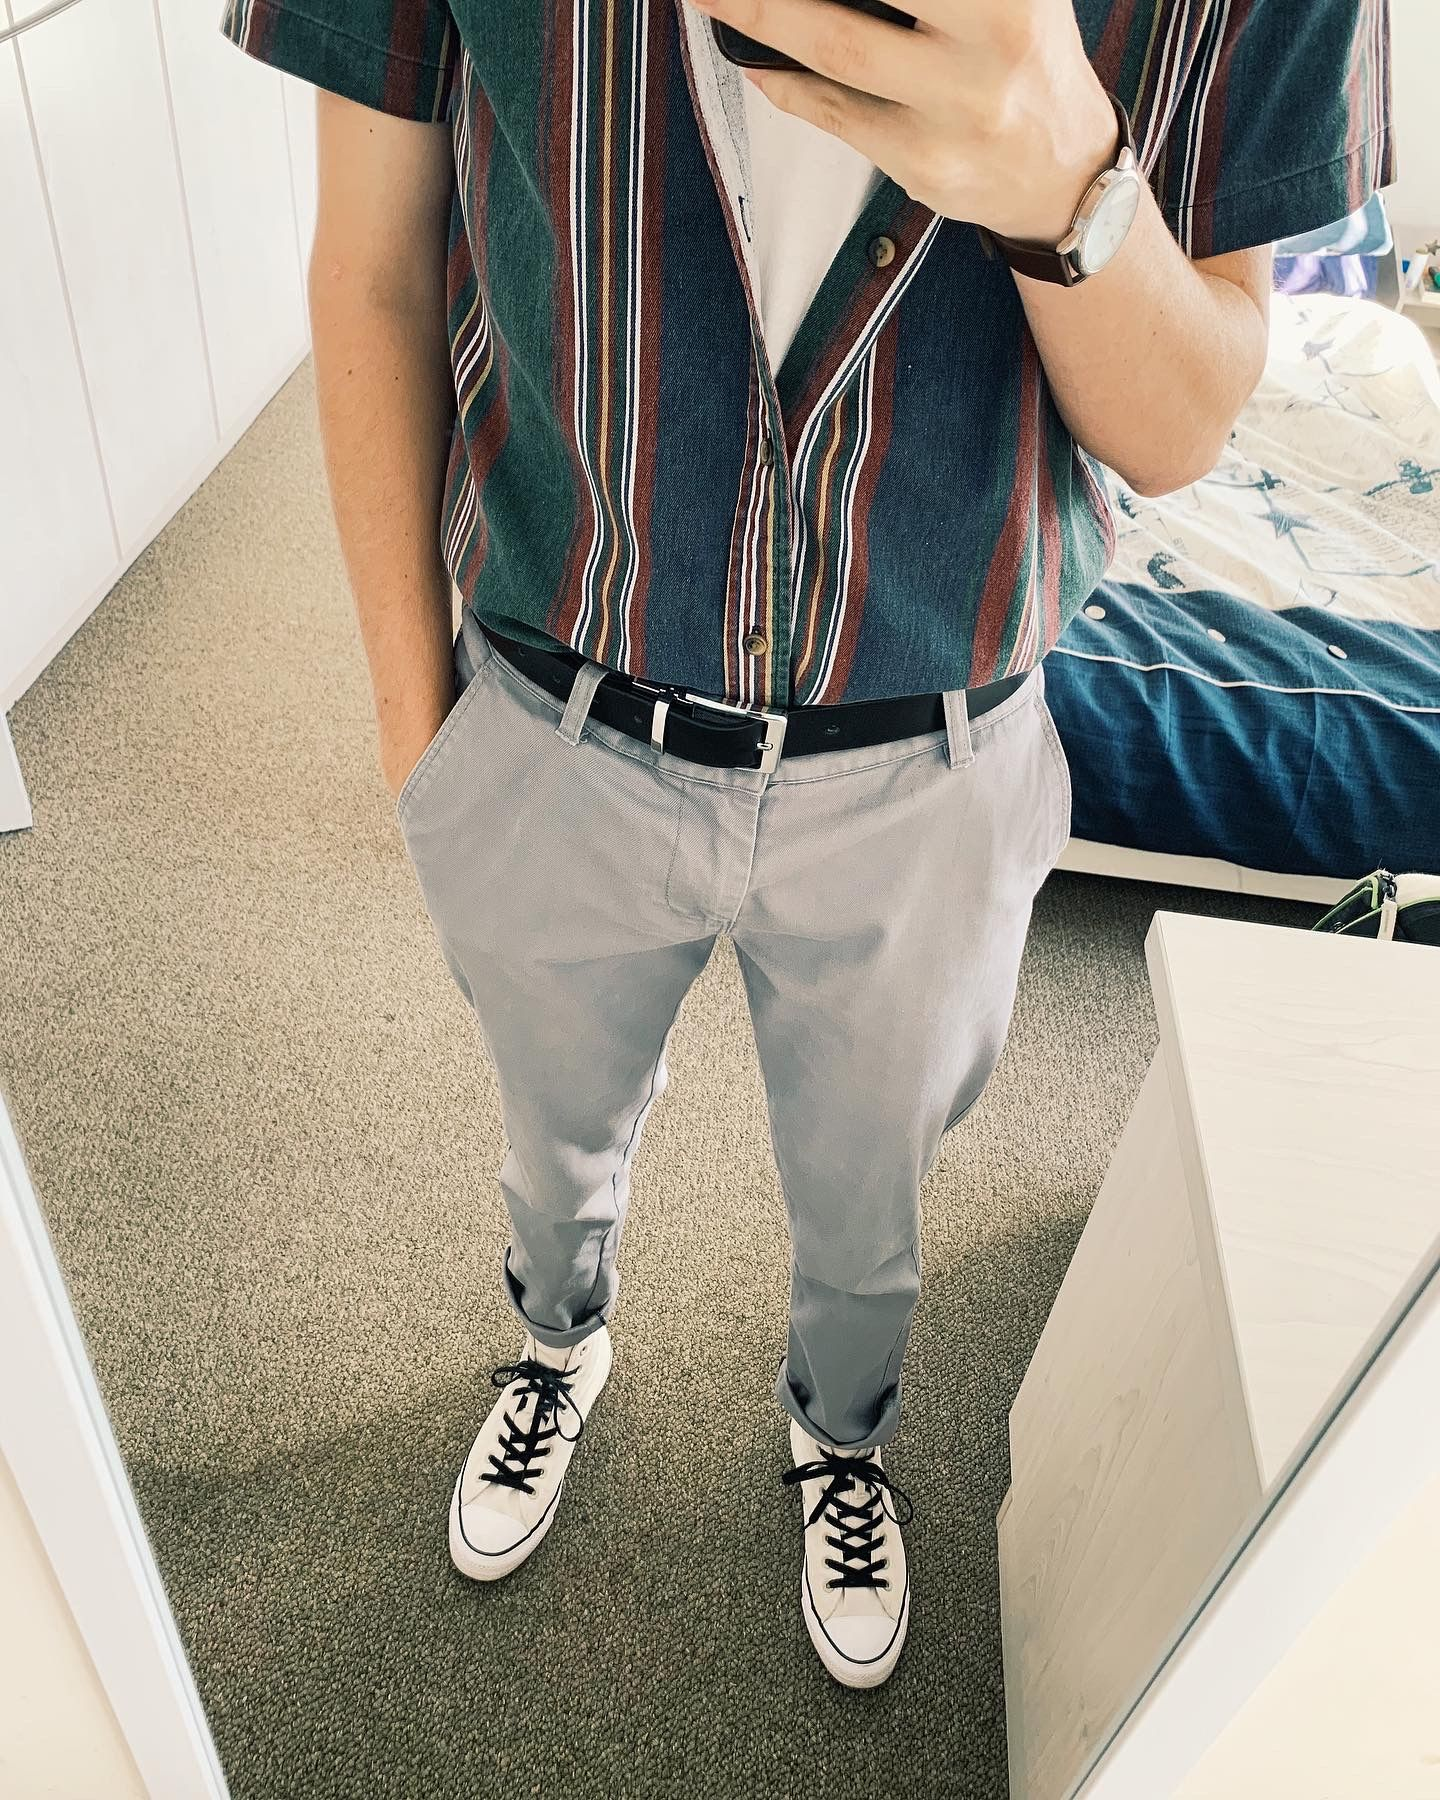 2020 Outfit Style For Men Mens Trendy Outfits Converse Men Outfit Mens Outfits [ 1800 x 1440 Pixel ]